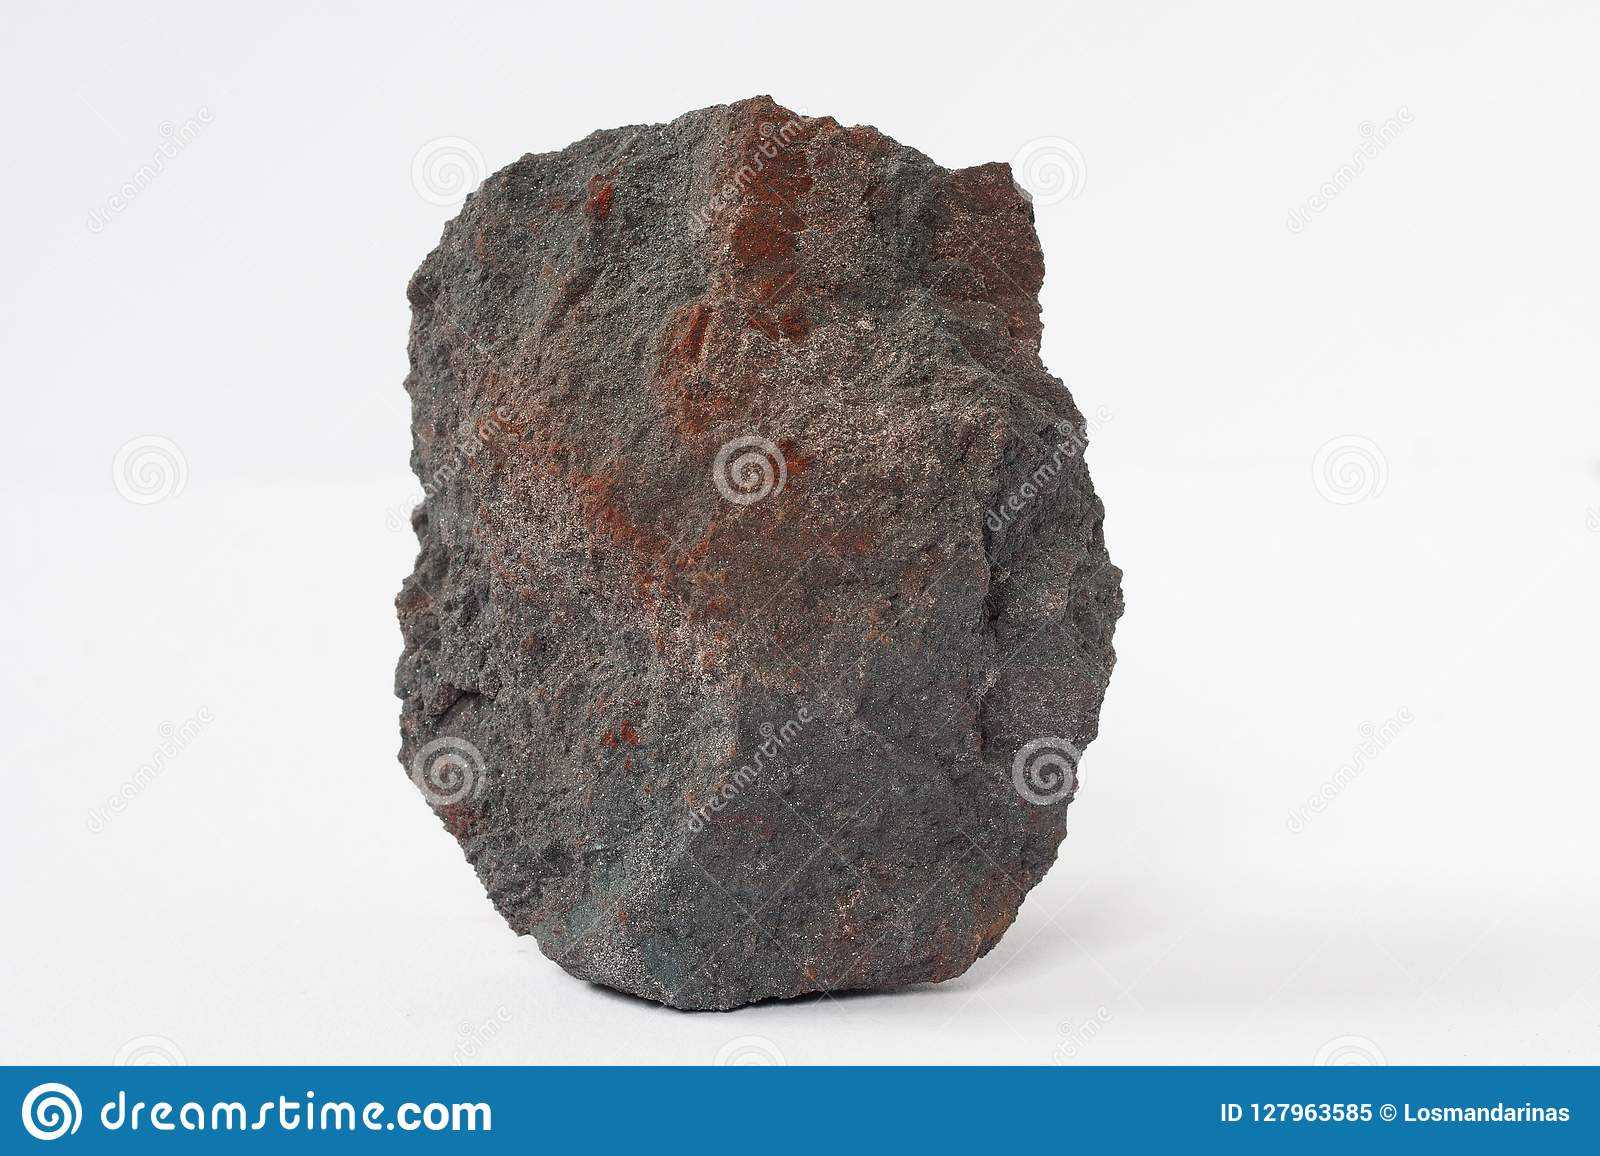 Hematite or haematite mineral also iron ore on white background